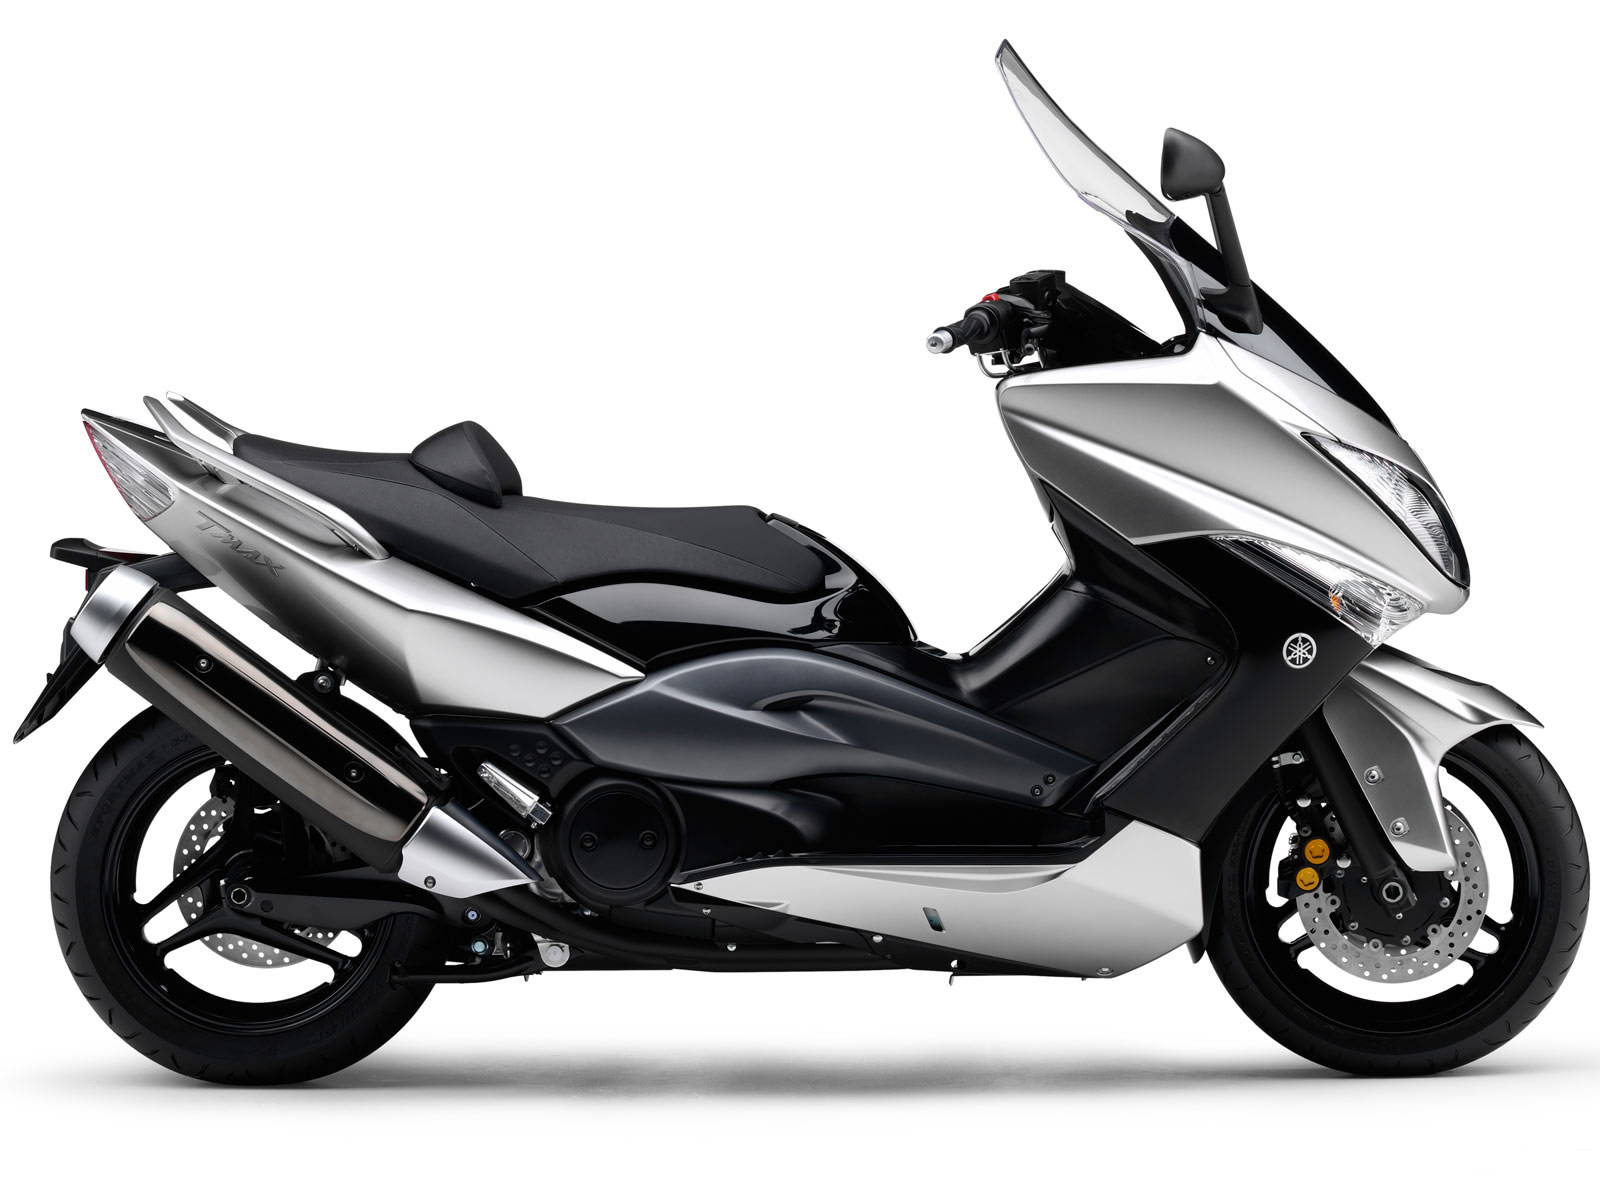 yamaha tmax 500 specs 2017. Black Bedroom Furniture Sets. Home Design Ideas